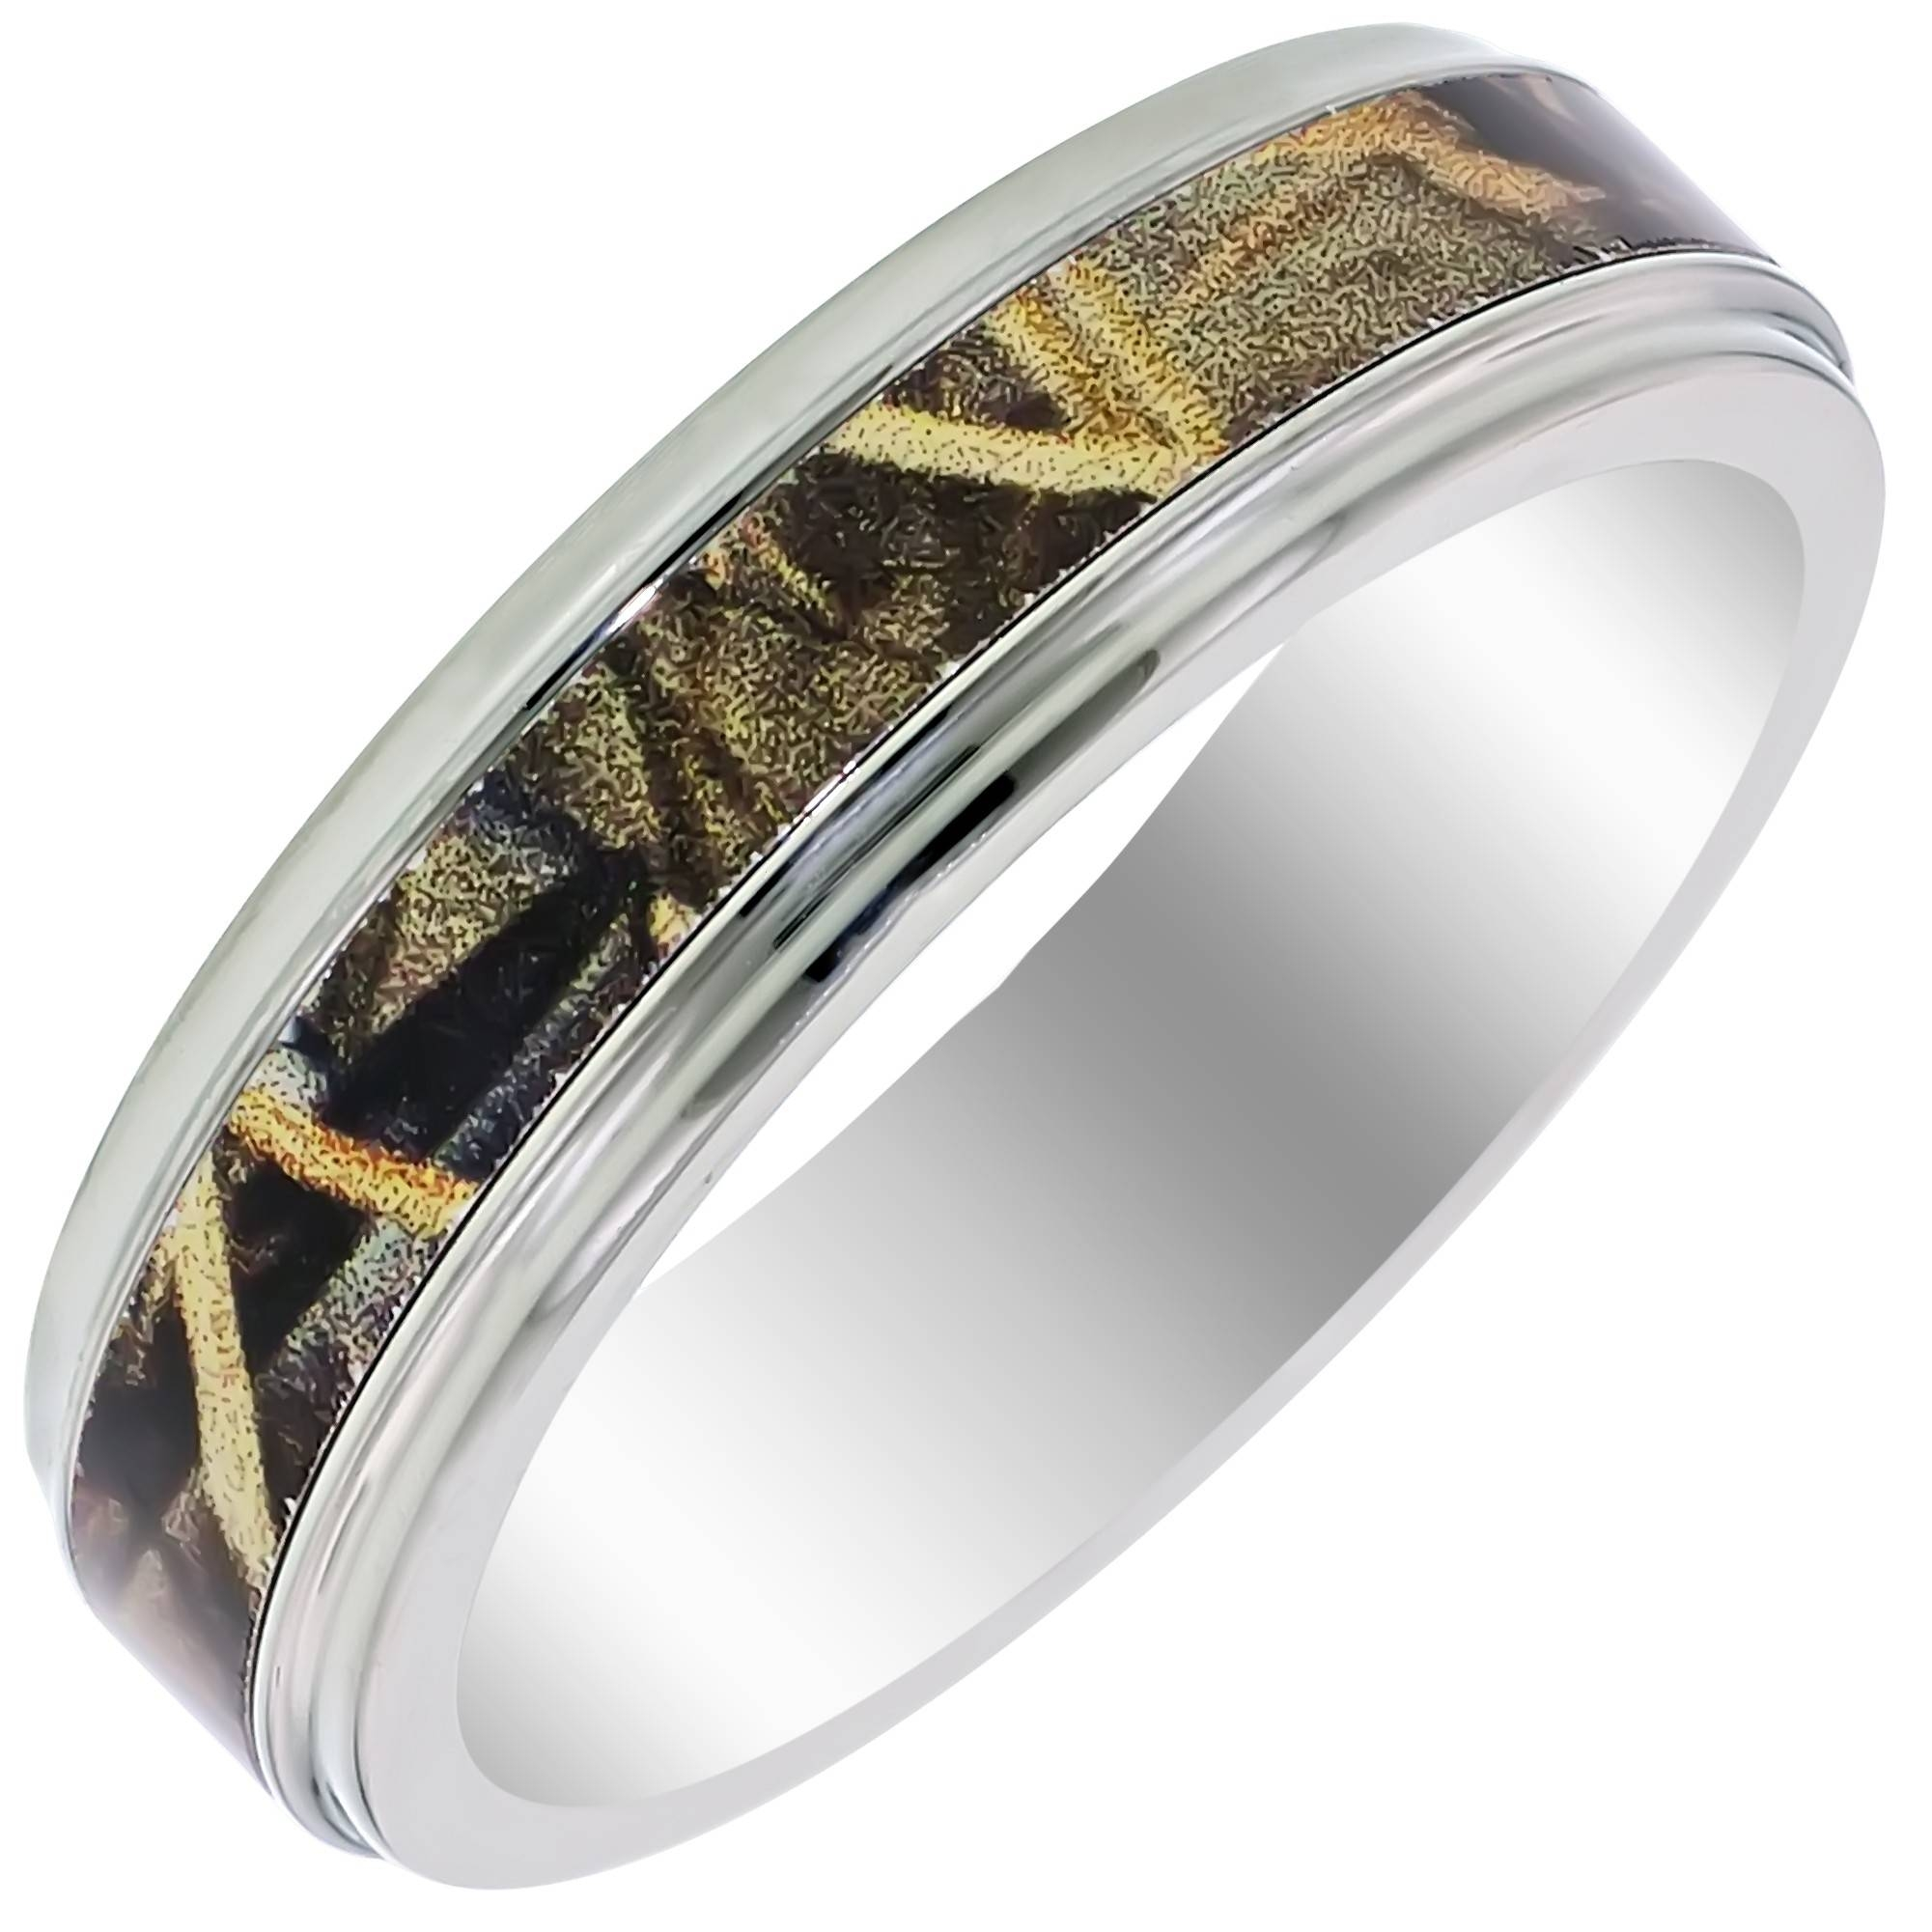 Mens Camouflage Wedding Band In Titanium (6Mm) With Regard To Men's Wedding Bands At Walmart (View 7 of 15)